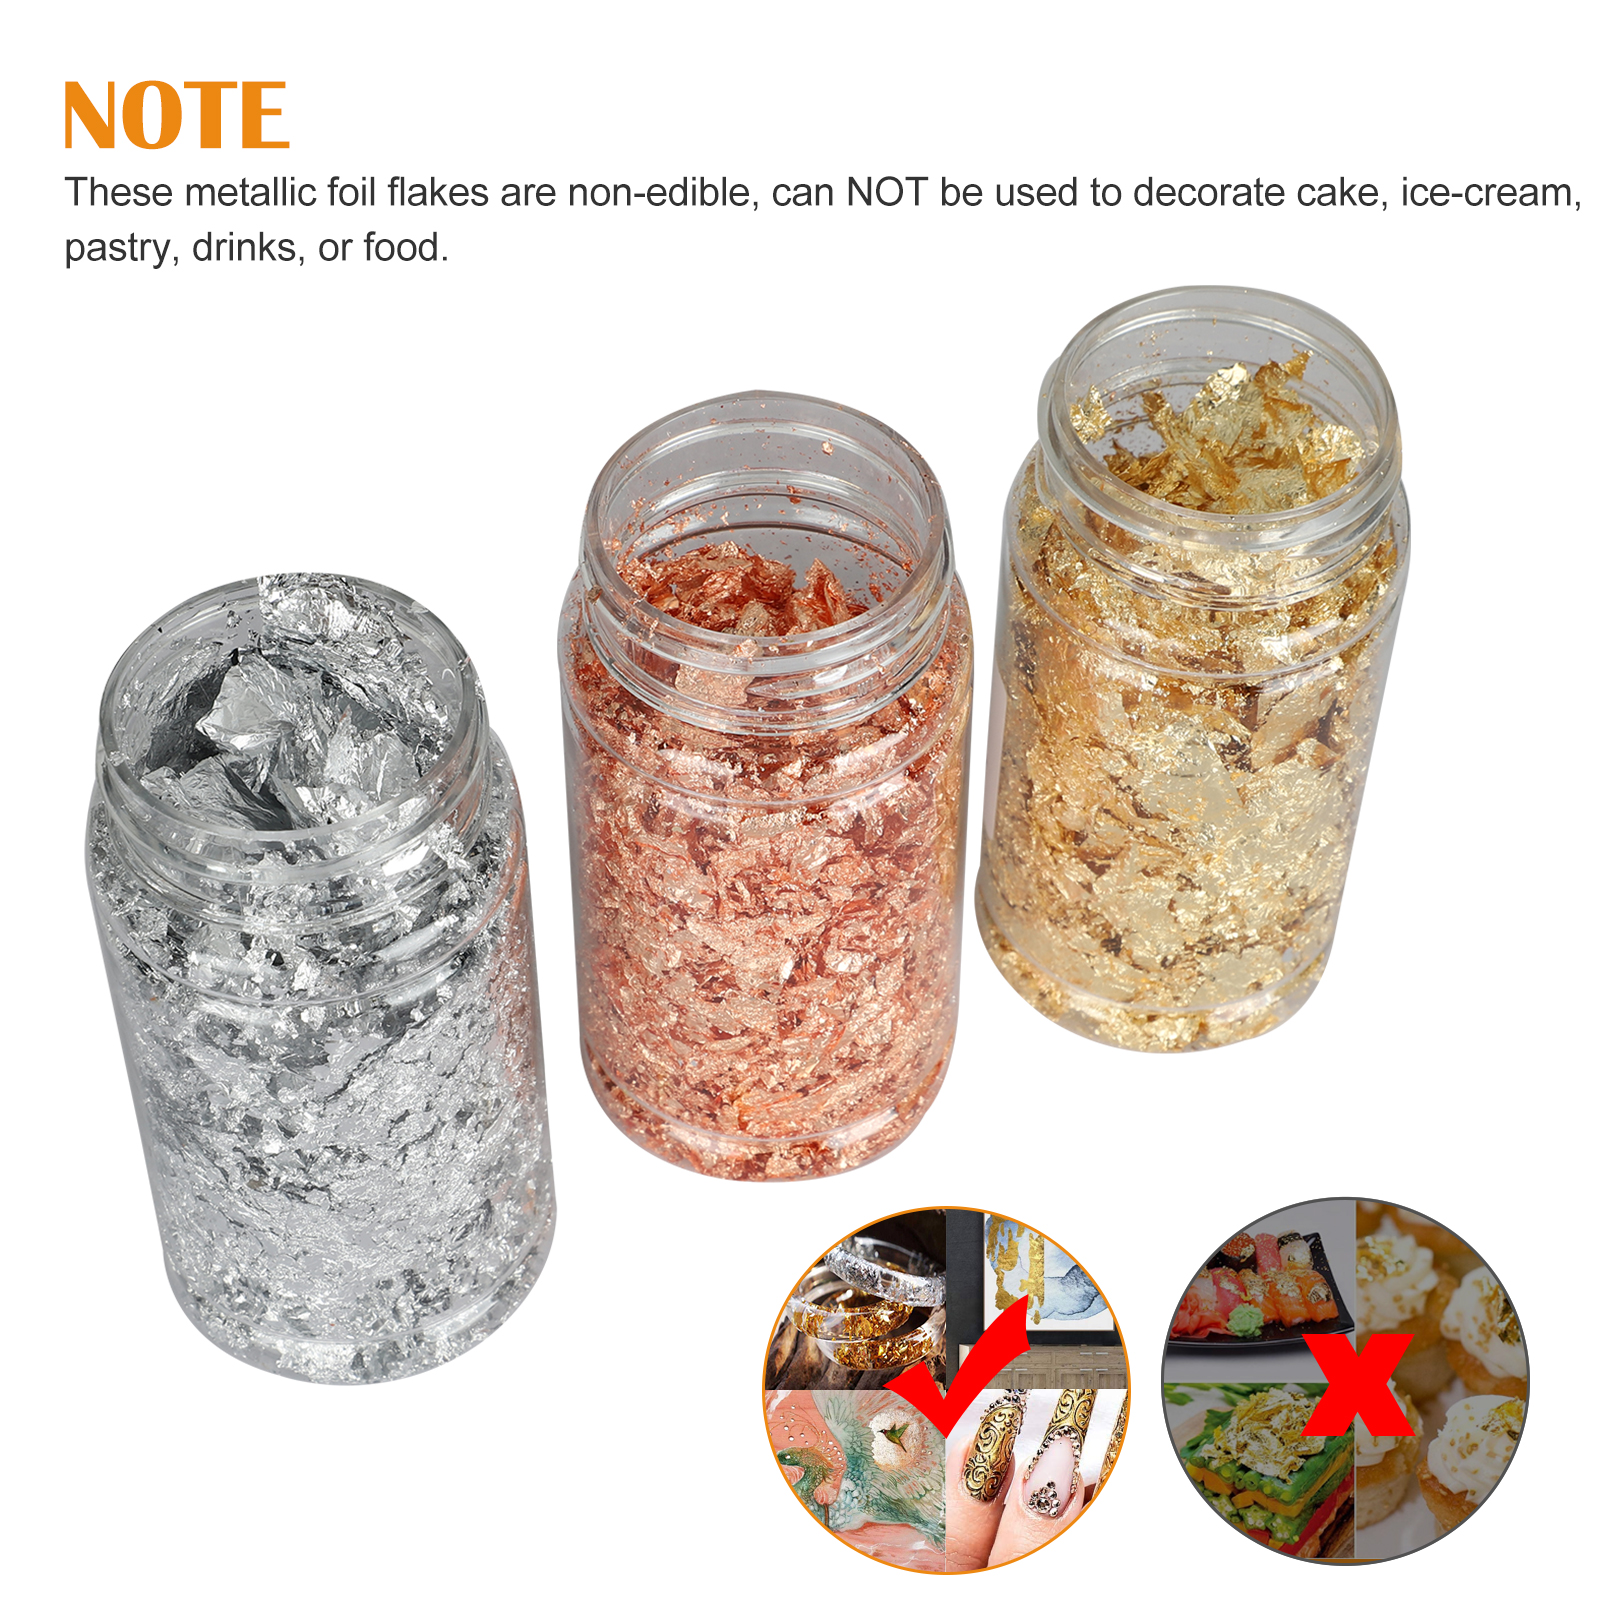 Gold-Foil-Leaf-Flake-Epoxy-Resin-Filling-Materials-DIY-Molds-Jewelry-Nail-Decor thumbnail 6